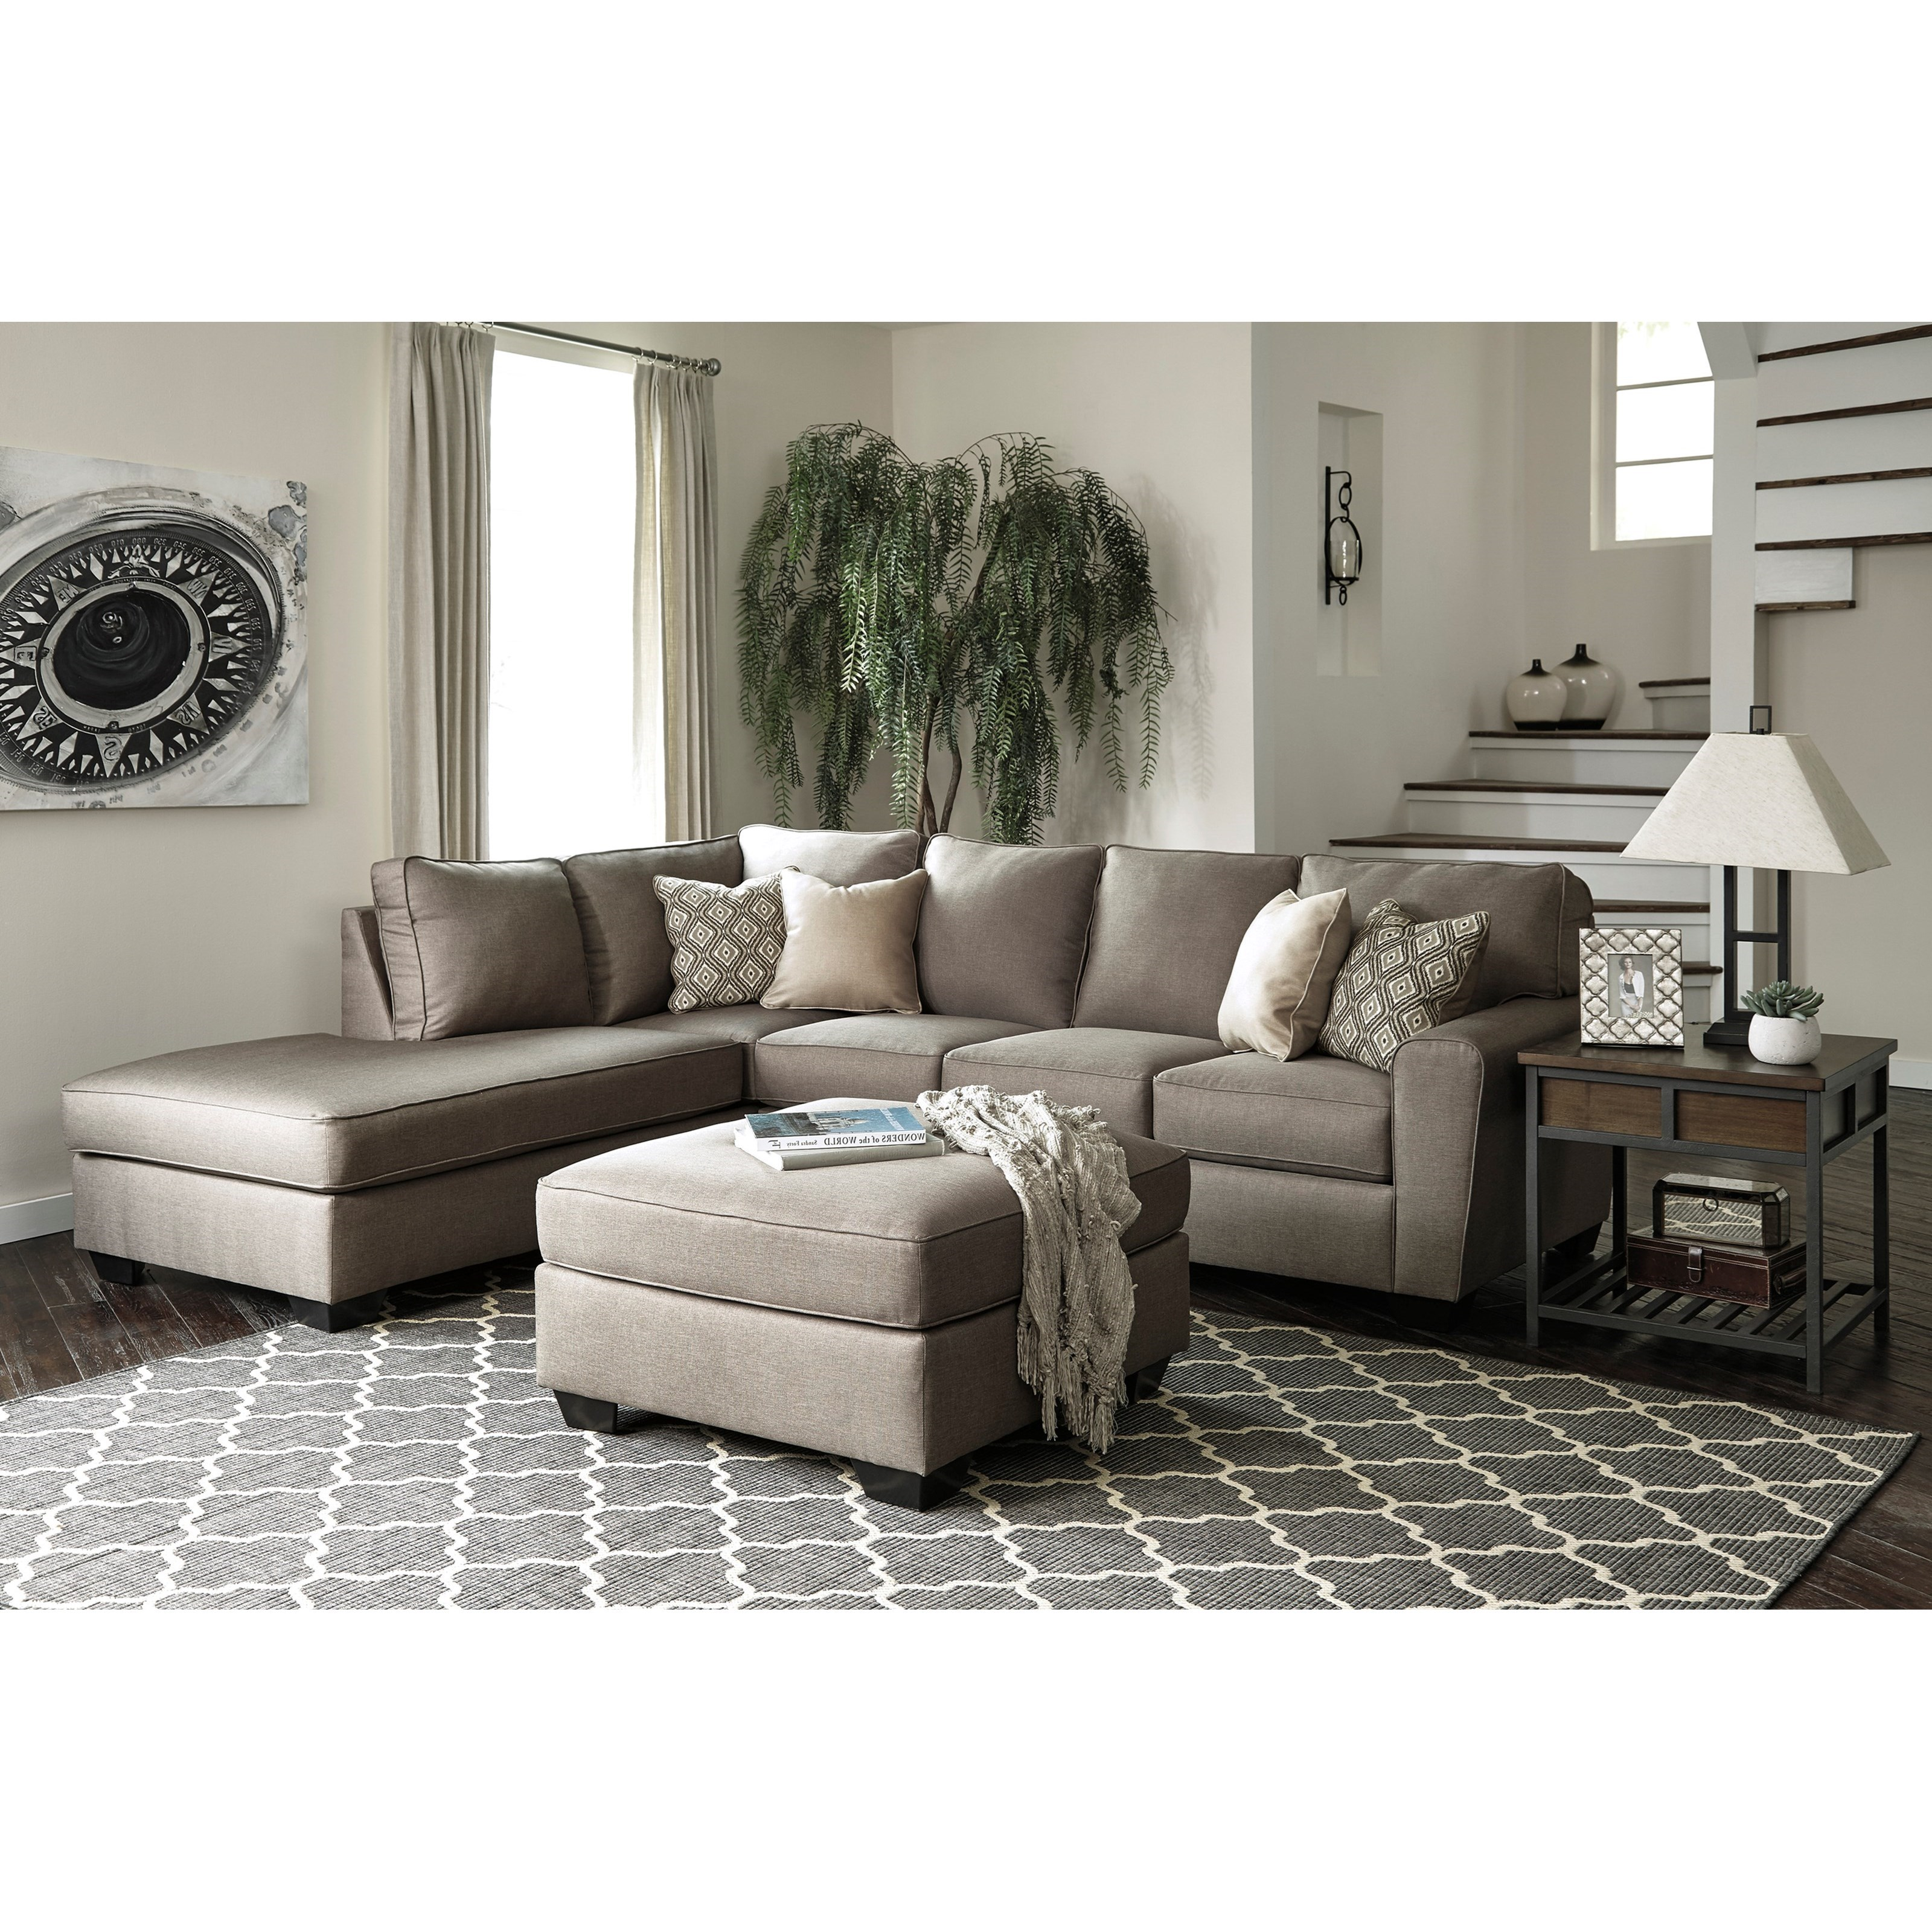 Calicho Stationary Living Room Group by Benchcraft at Northeast Factory Direct